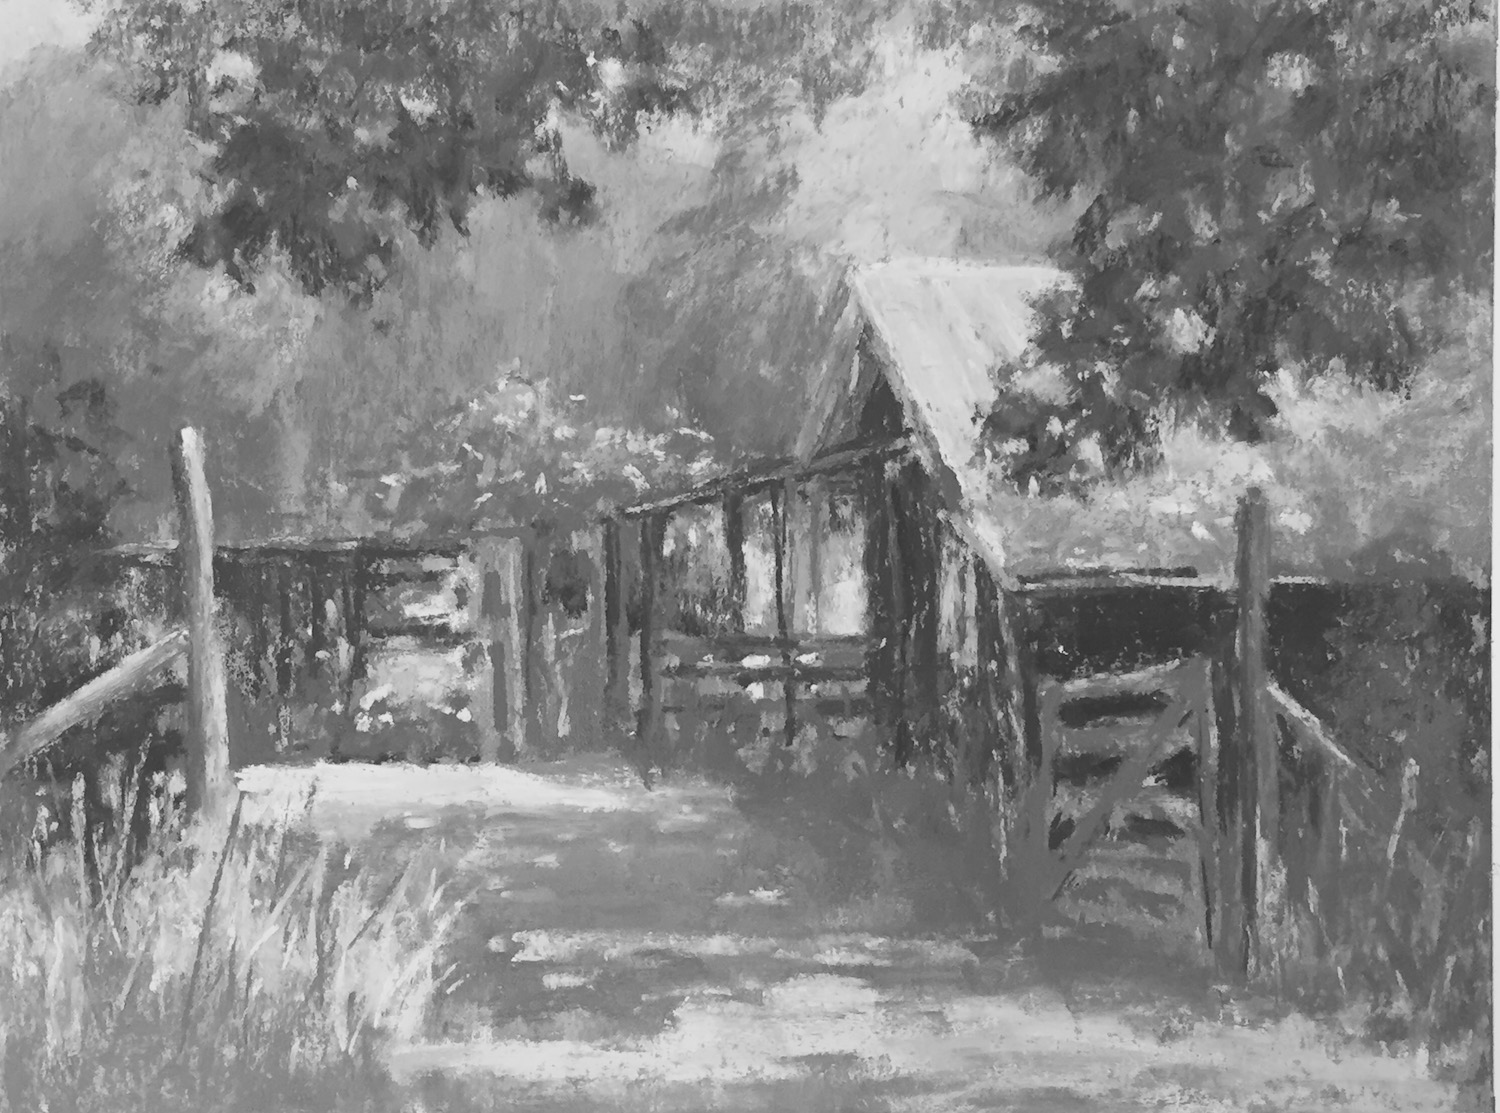 Tweaking my plein air painting in the studio: And just because, here's the black and white version